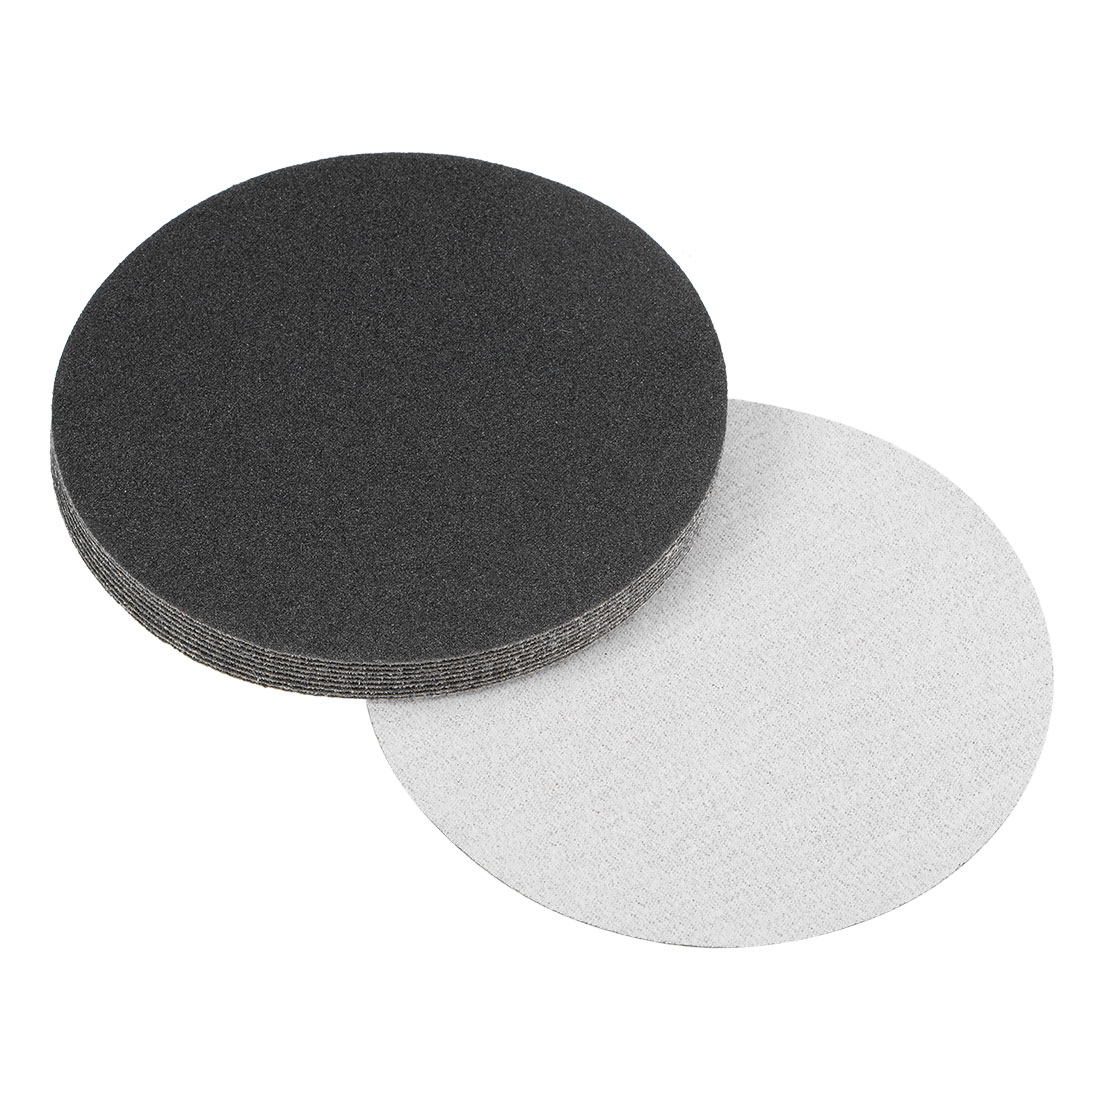 5 inch Wet Dry Discs 100 Grit Hook and Loop Sanding Disc Silicon Carbide 10pcs